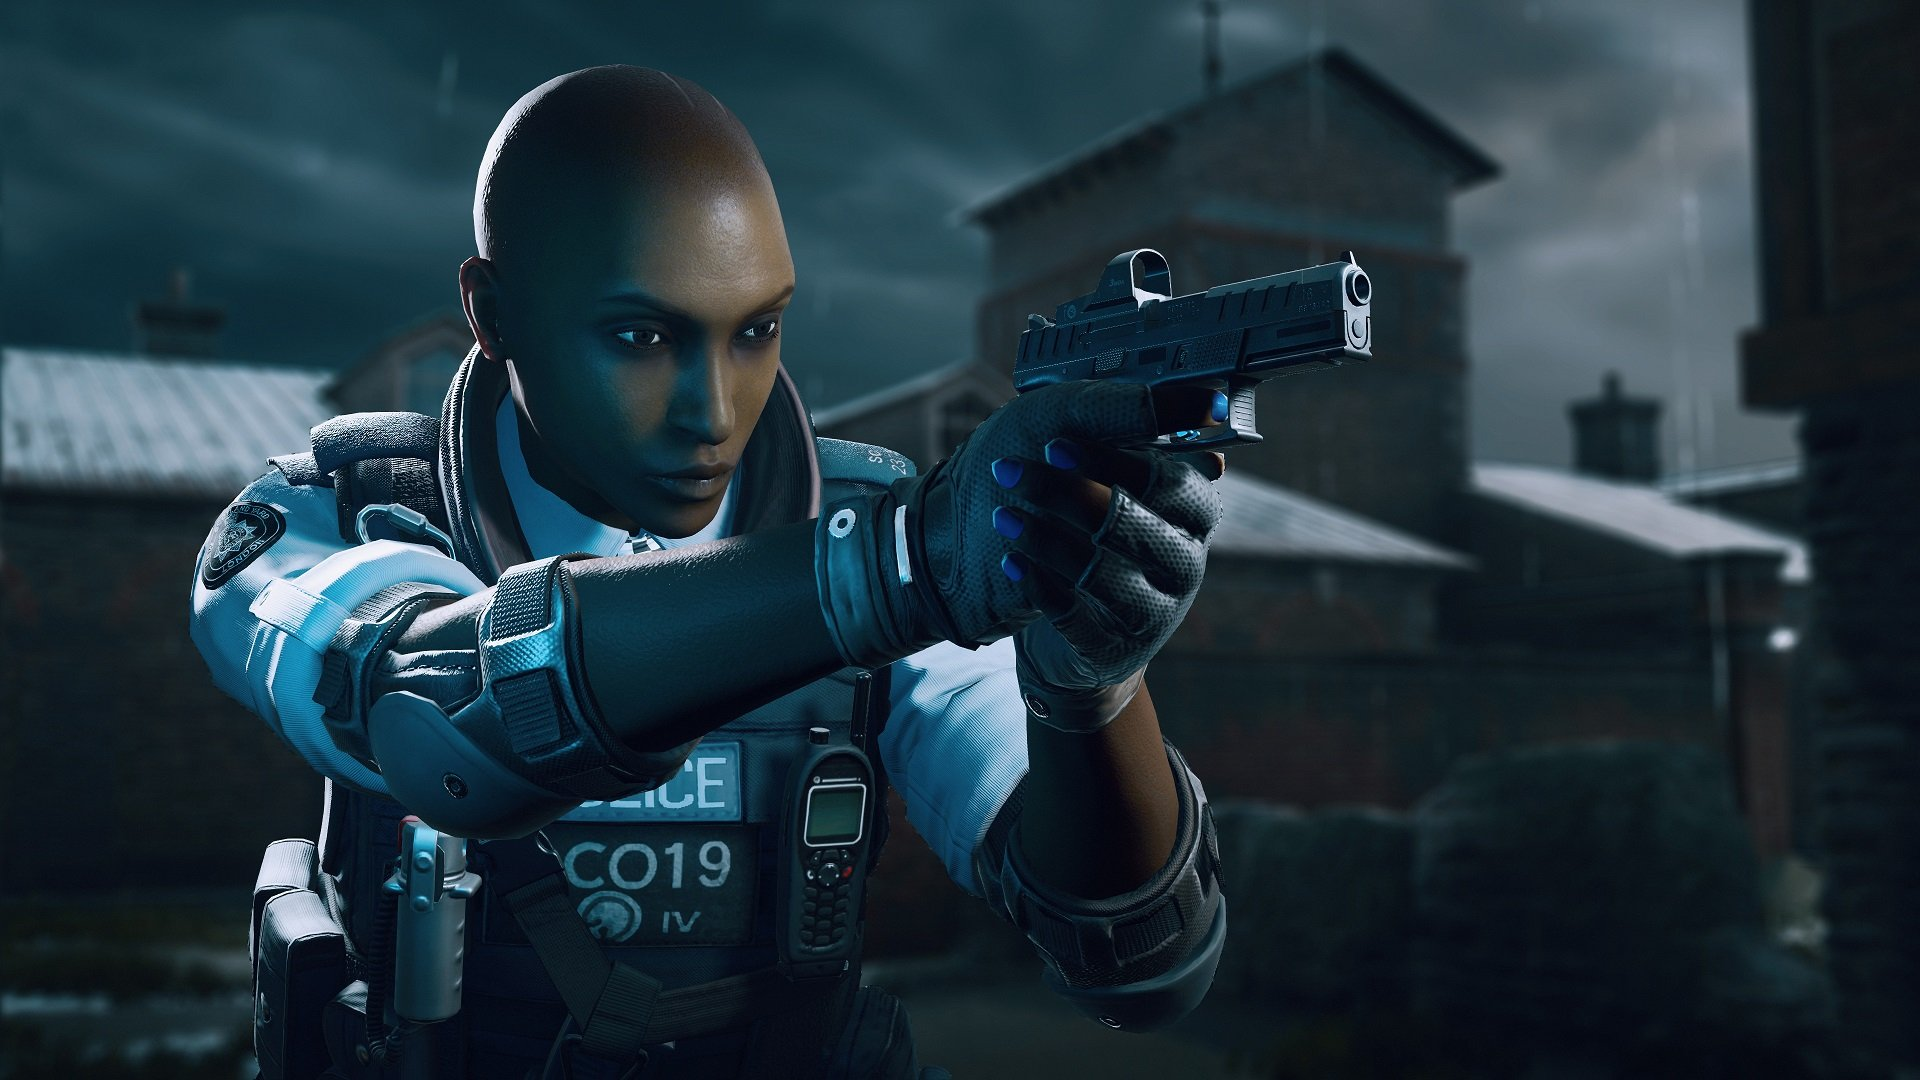 Hot alabama girls nude